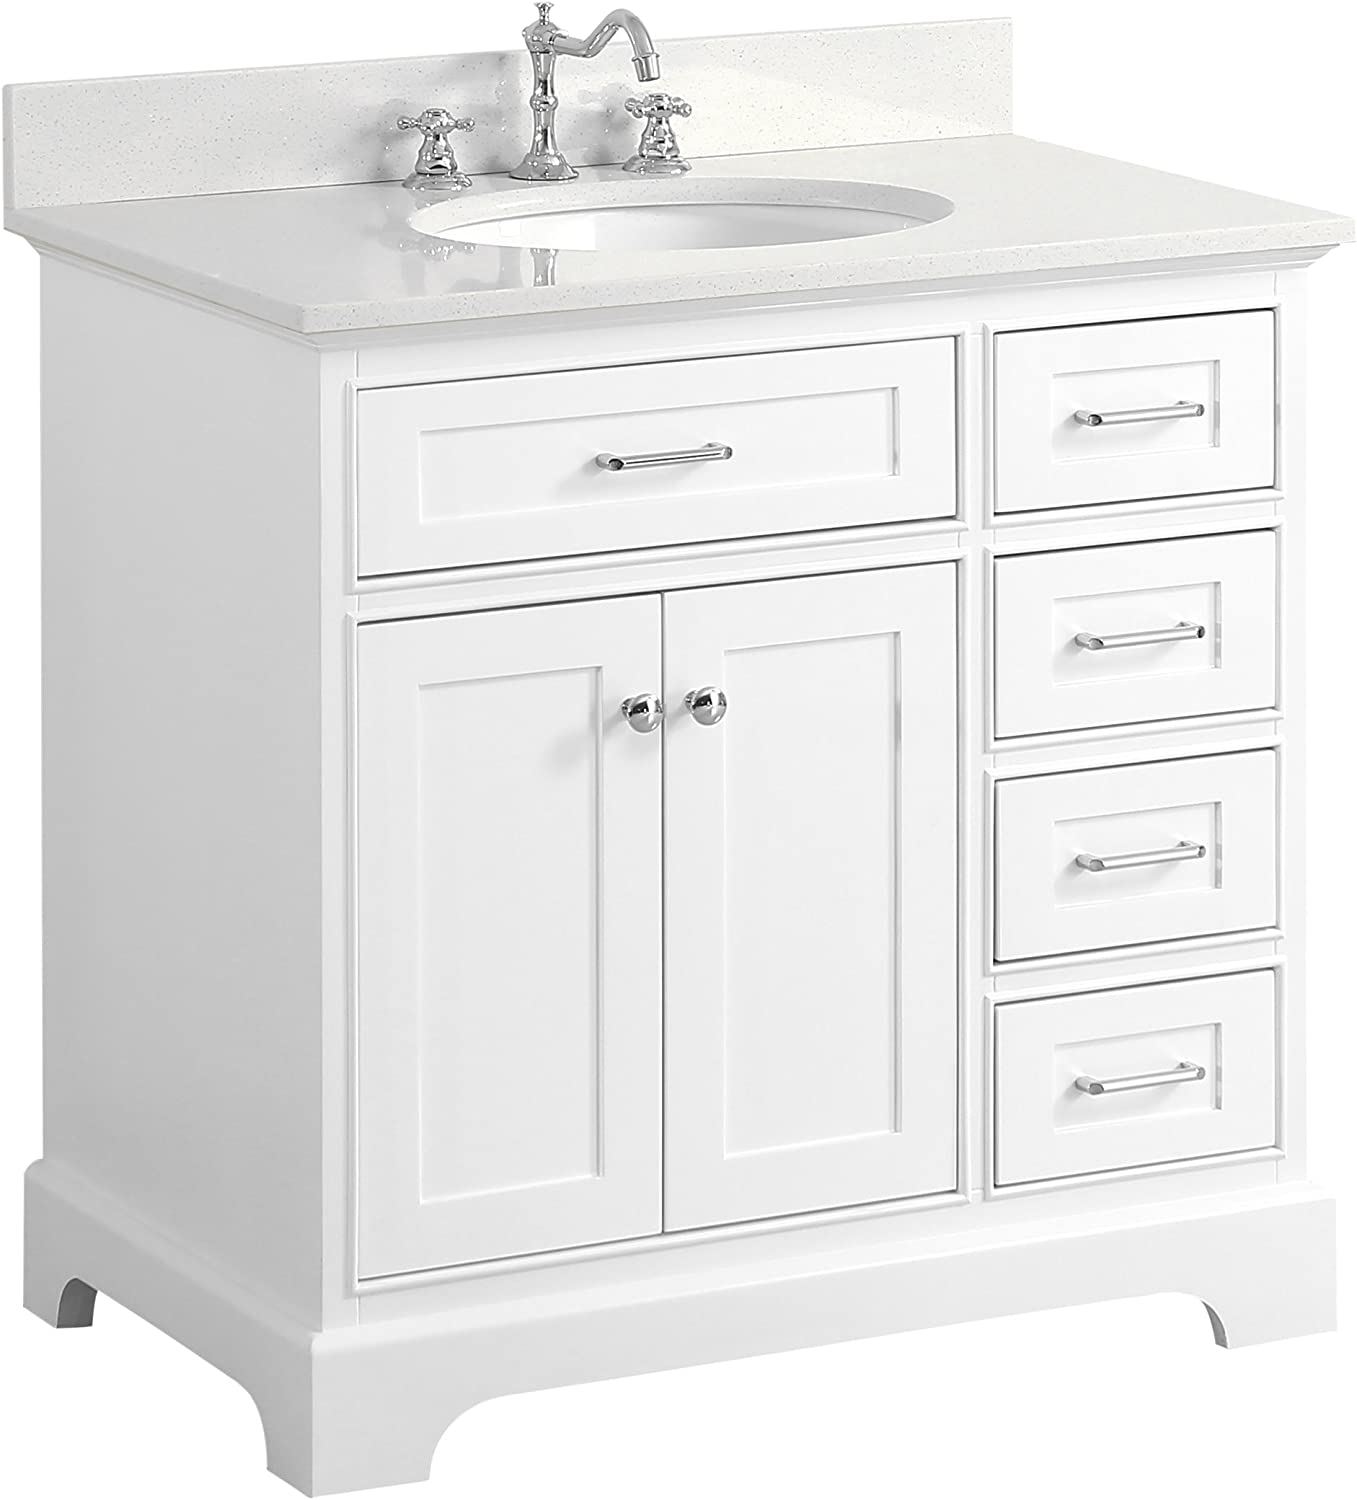 Aria 36-inch Bathroom Vanity Quartz White Includes a White Cabinet with Soft Close Drawers, Quartz Countertop, and White Ceramic Sink